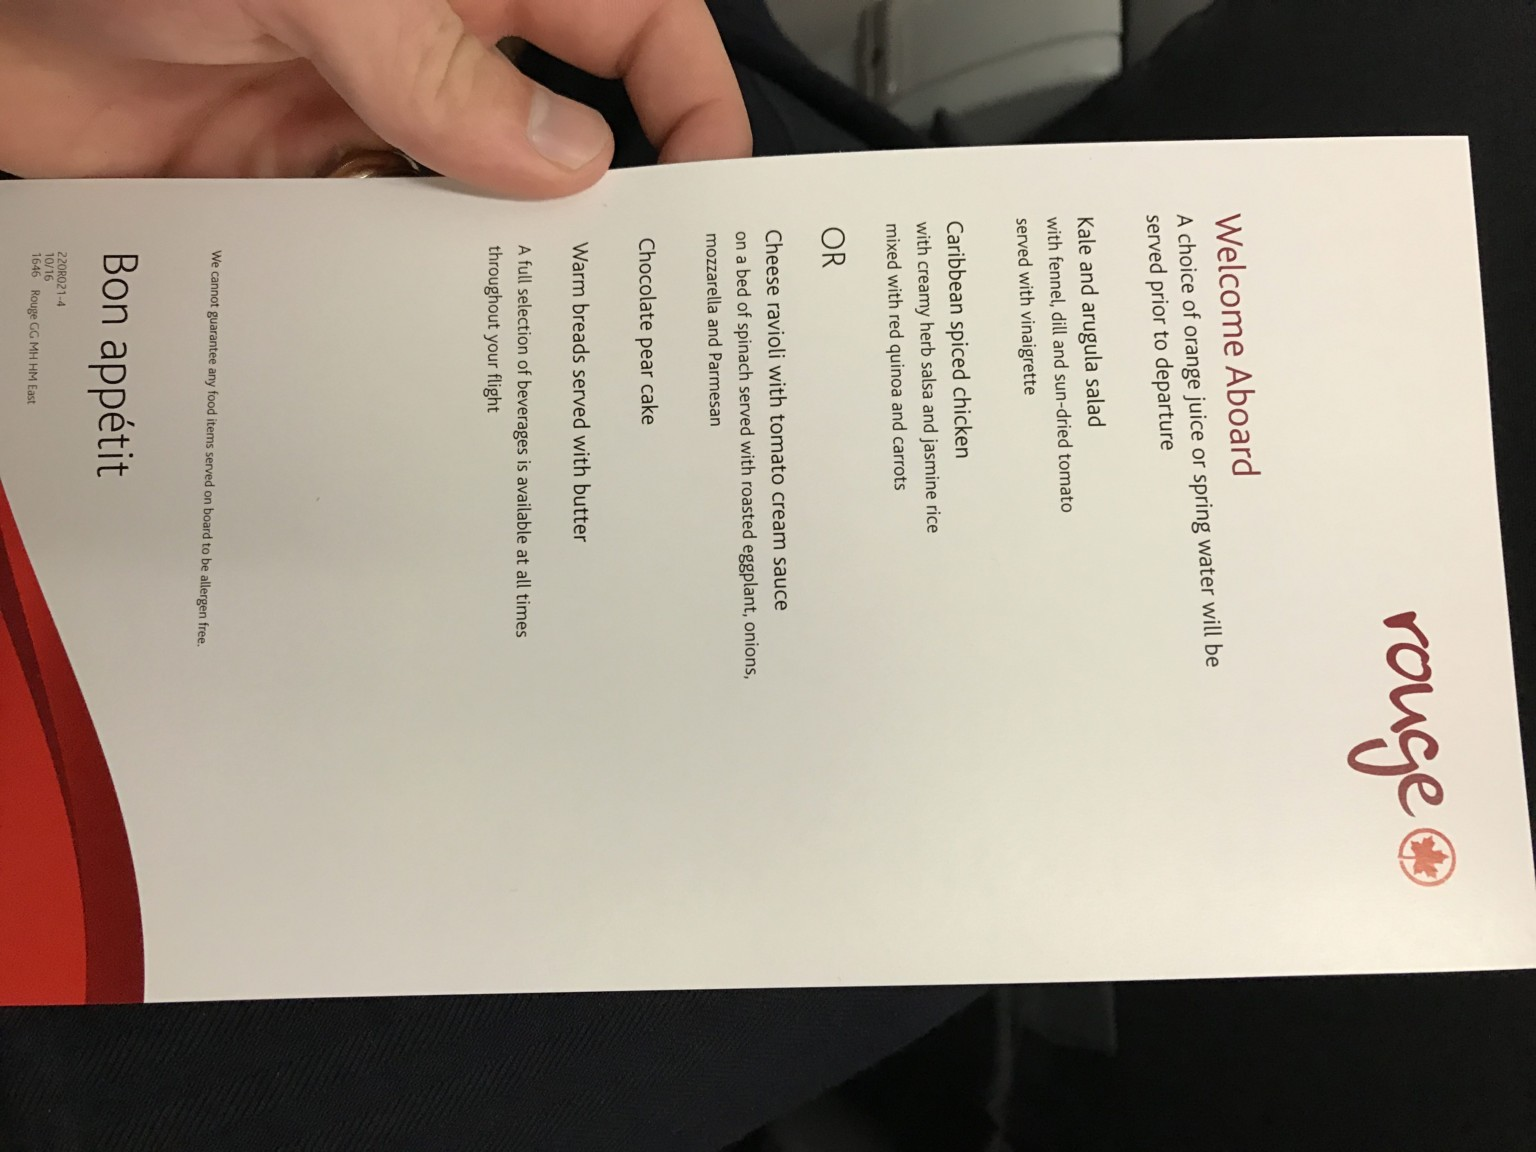 Airbus A319 100 Air Canada Rouge Premium Seats Inflight Amenities Food Meal Services Menu